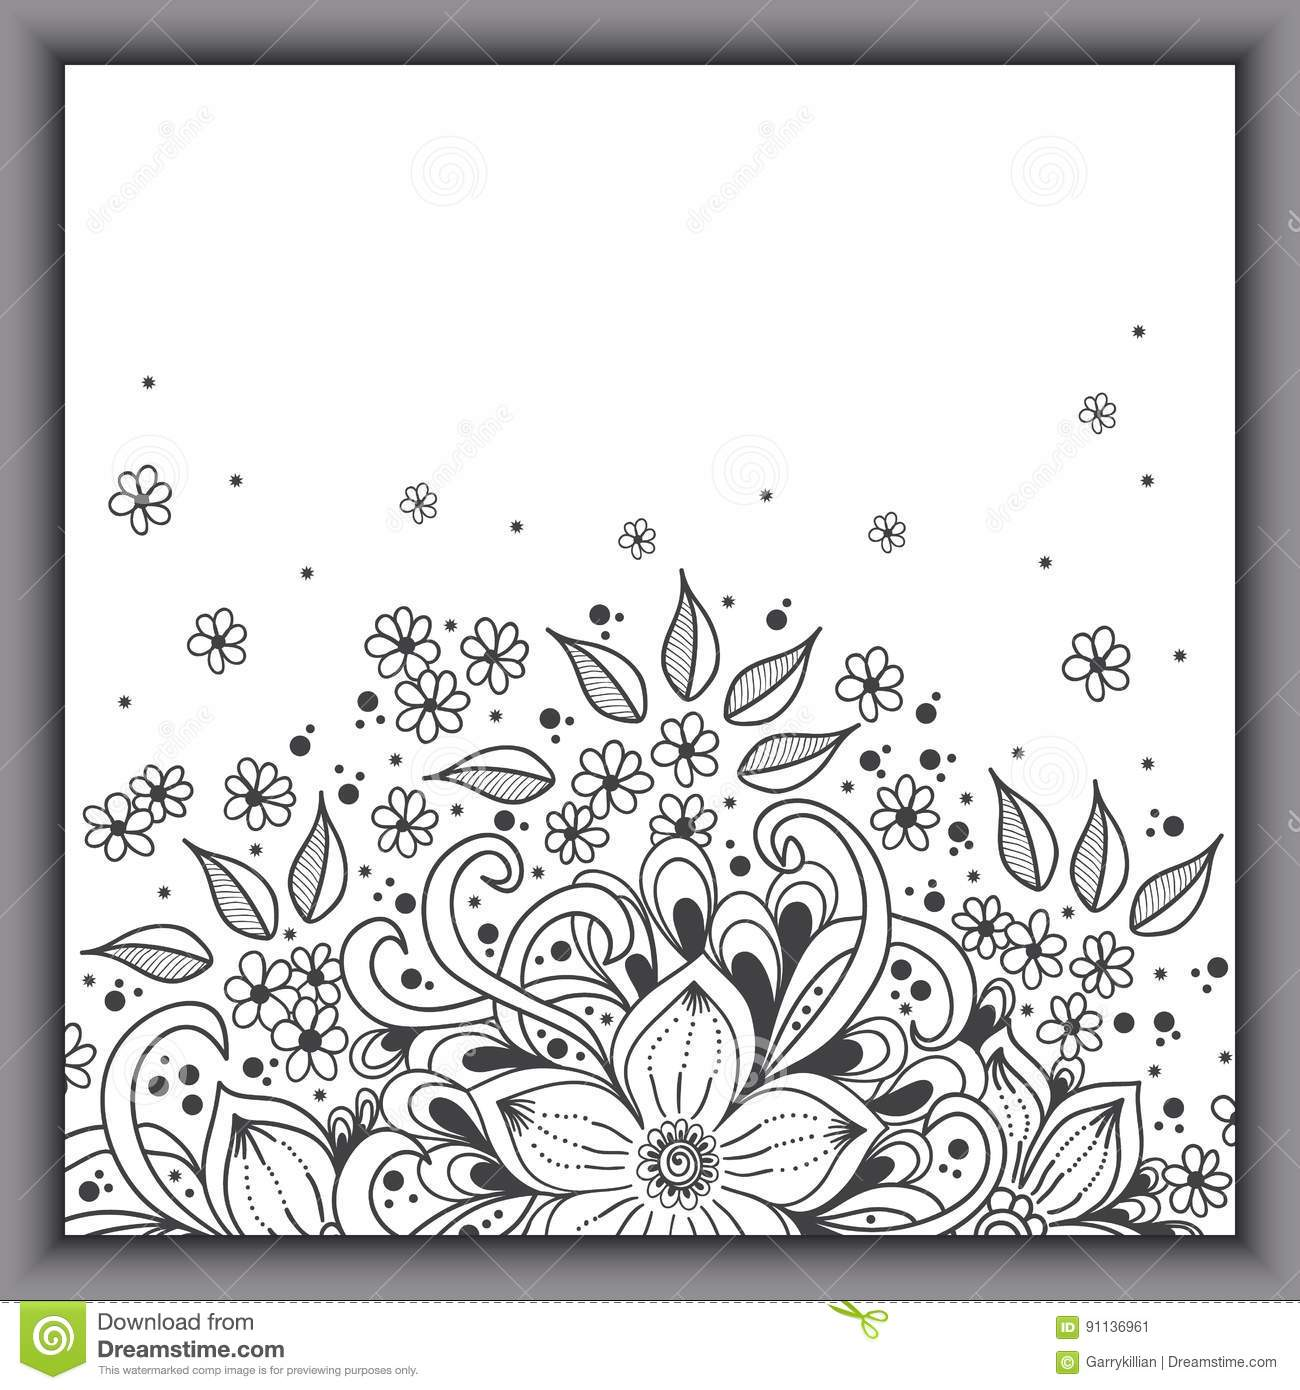 Wedding invitation card with vector abstract floral elements in download wedding invitation card with vector abstract floral elements in indian mehndi style stock vector stopboris Images